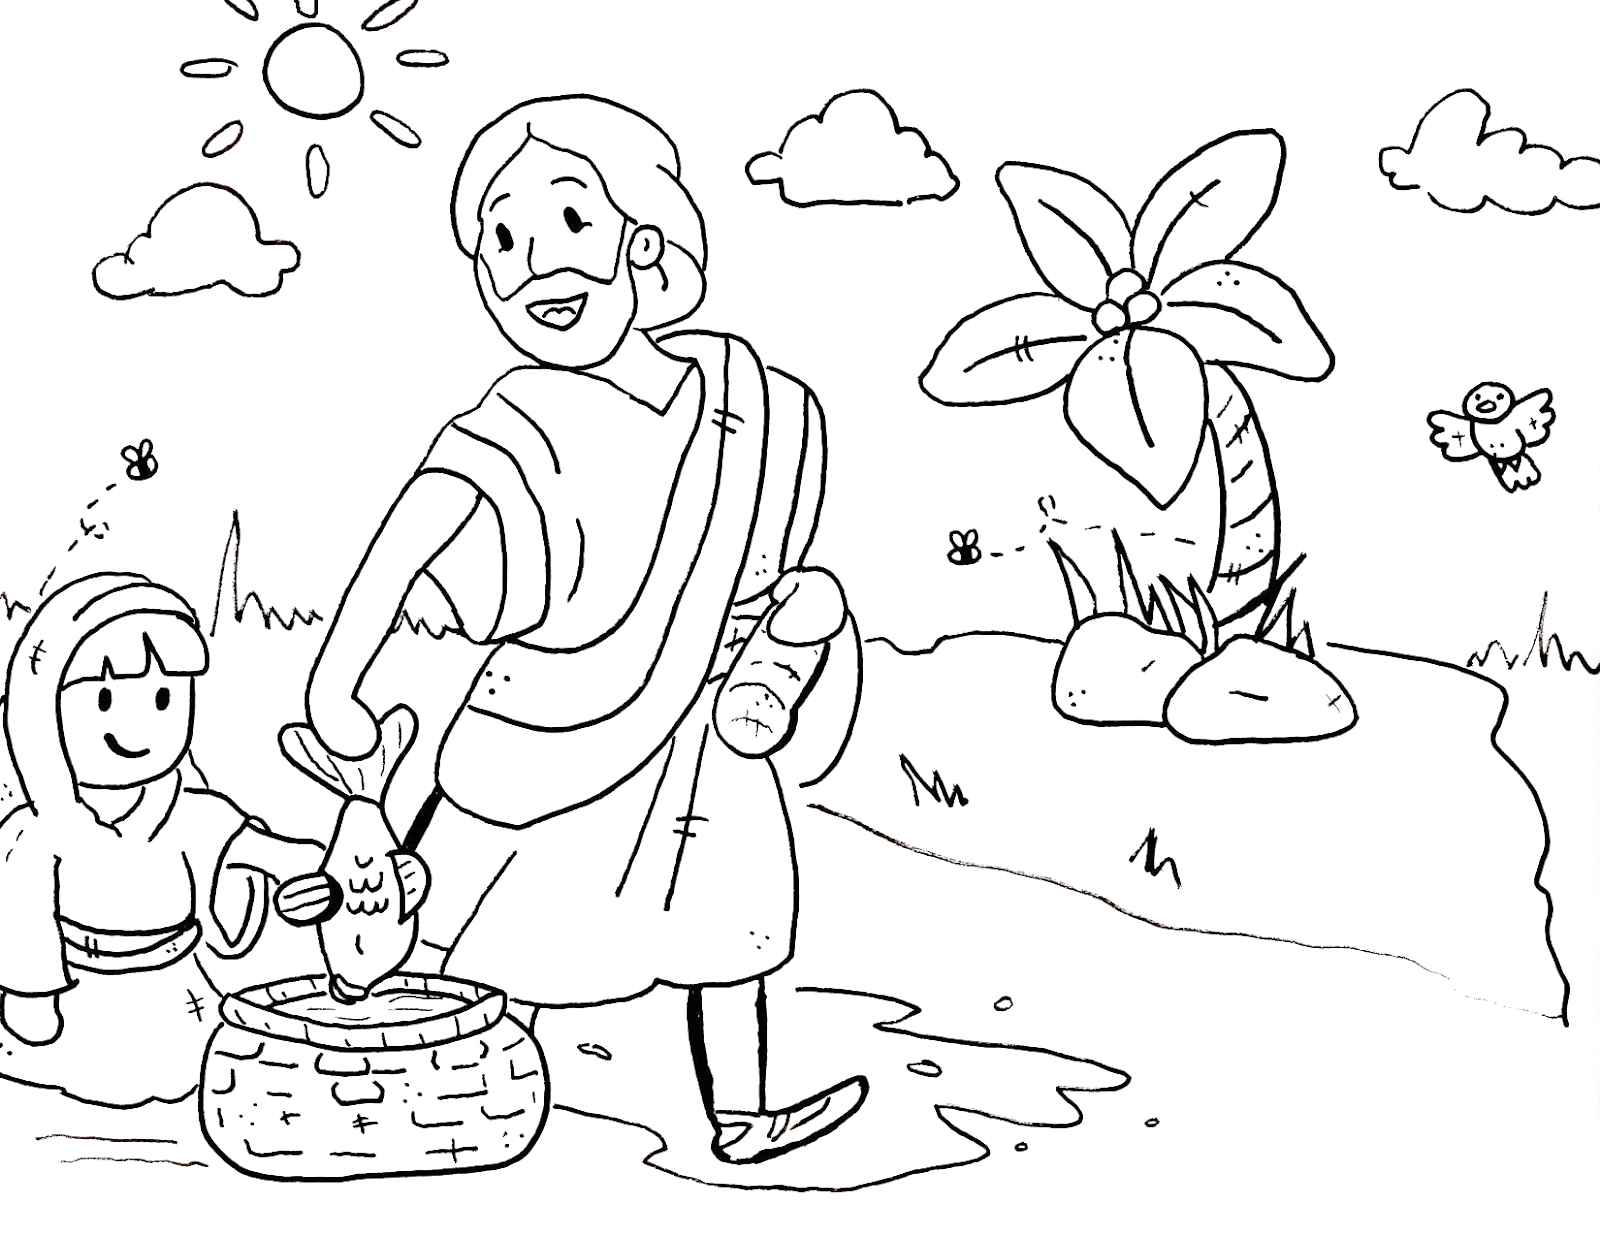 Sunday School Coloring Pages for Preschoolers Free Scraphappy Paper Crafter Free Digis Great for Sunday